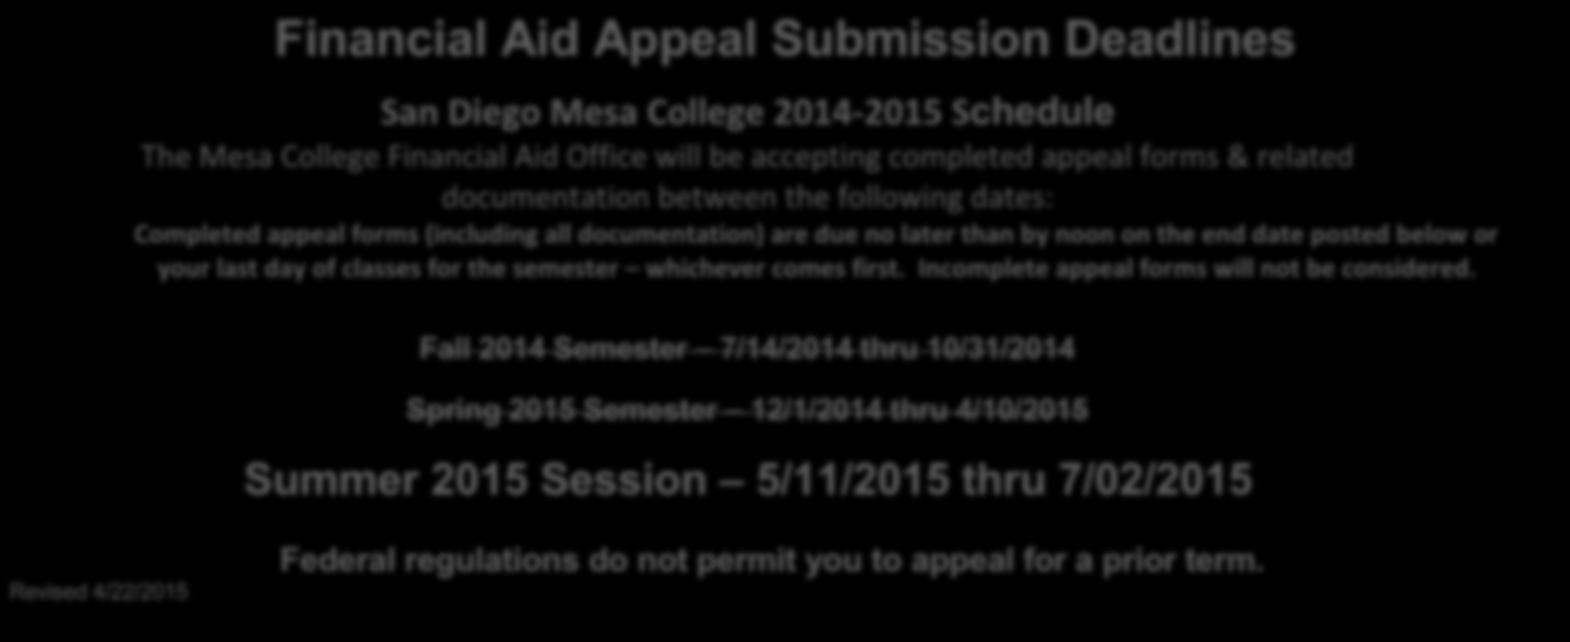 # 31 FINANCIAL AID APPEAL FORM & PROCESS GUIDE * * * YOU MUST BE ENROLLED IN A MINIMUM OF 3 UNITS OF REQUIRED COURSEWORK AT SAN DIEGO MESA COLLEGE BASED ON YOUR COUNSELOR APPROVED EDUCATIONAL PLAN IN